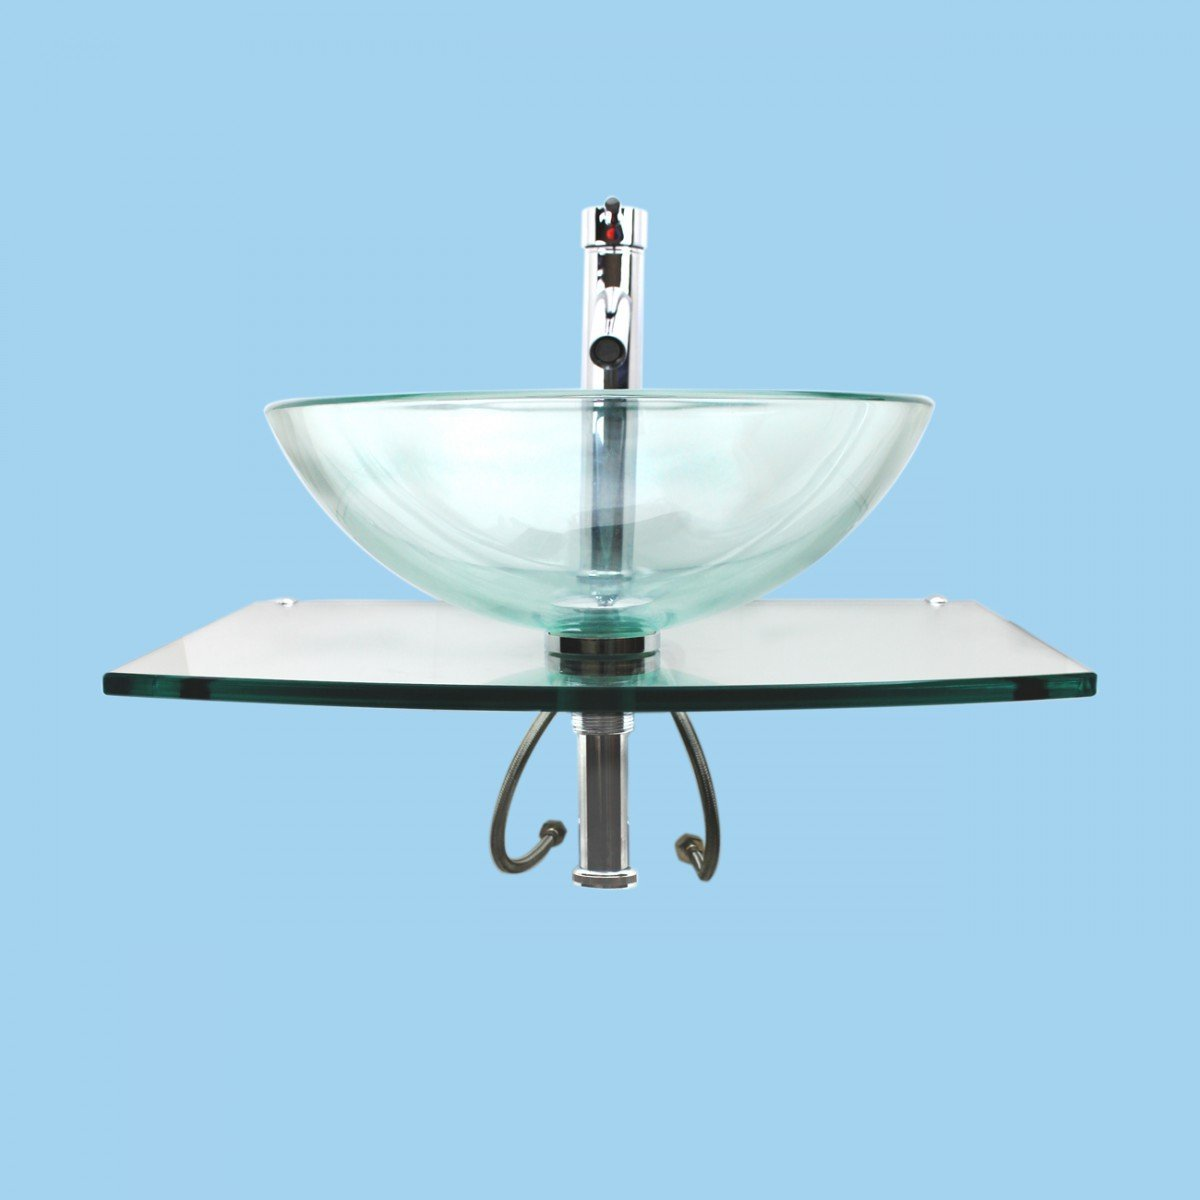 Halo Clear Tempered Glass Vessel Sink Complete Set With Chrome ...